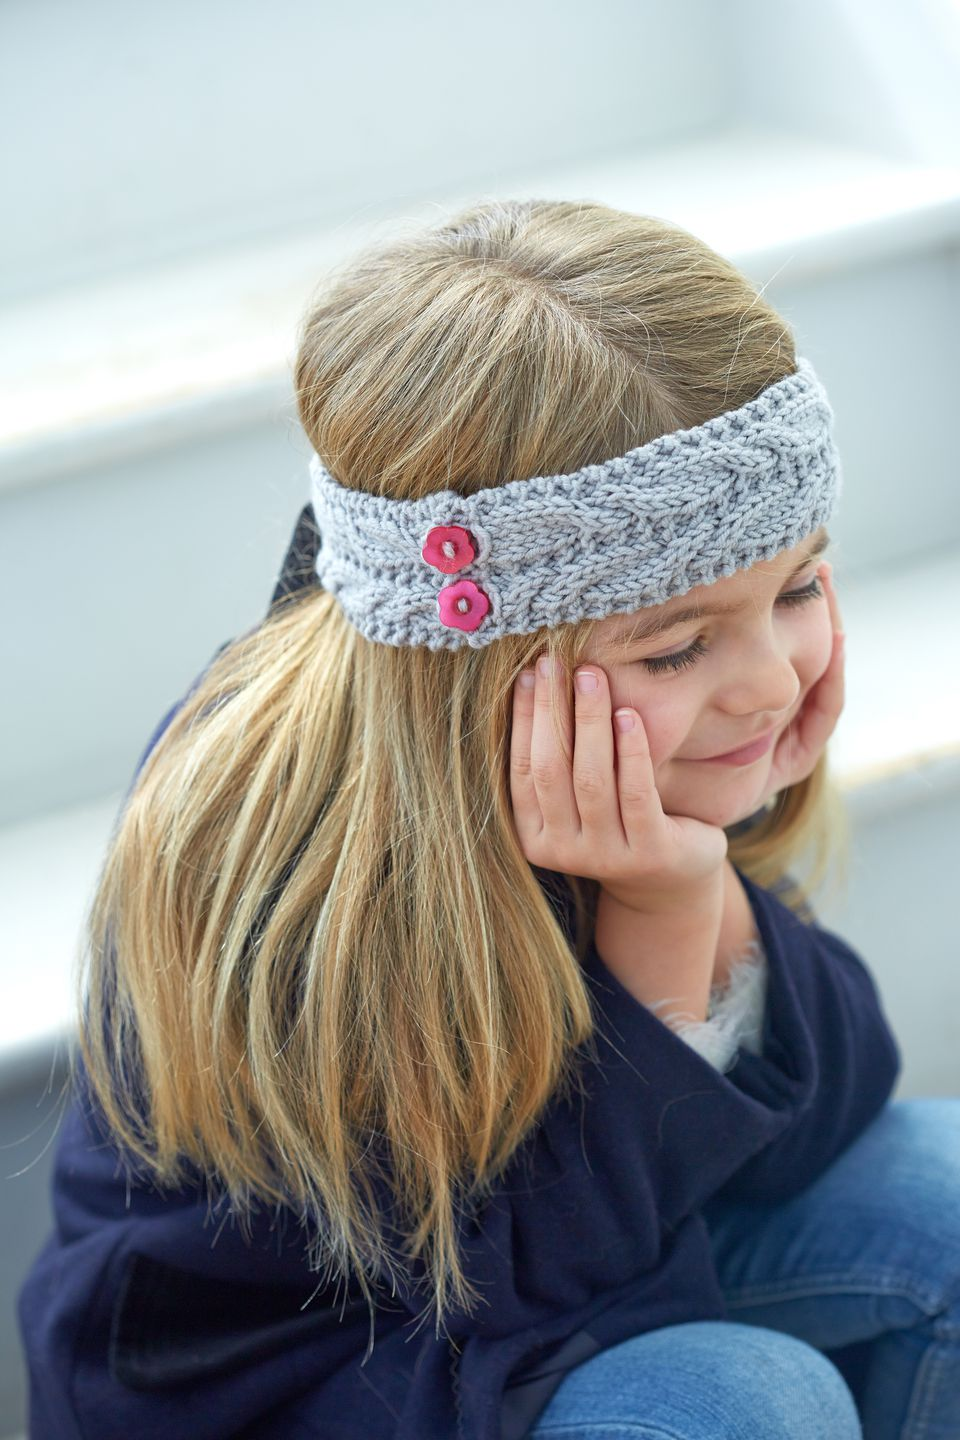 Girl (5 years) wearing knitted ear warmer headband